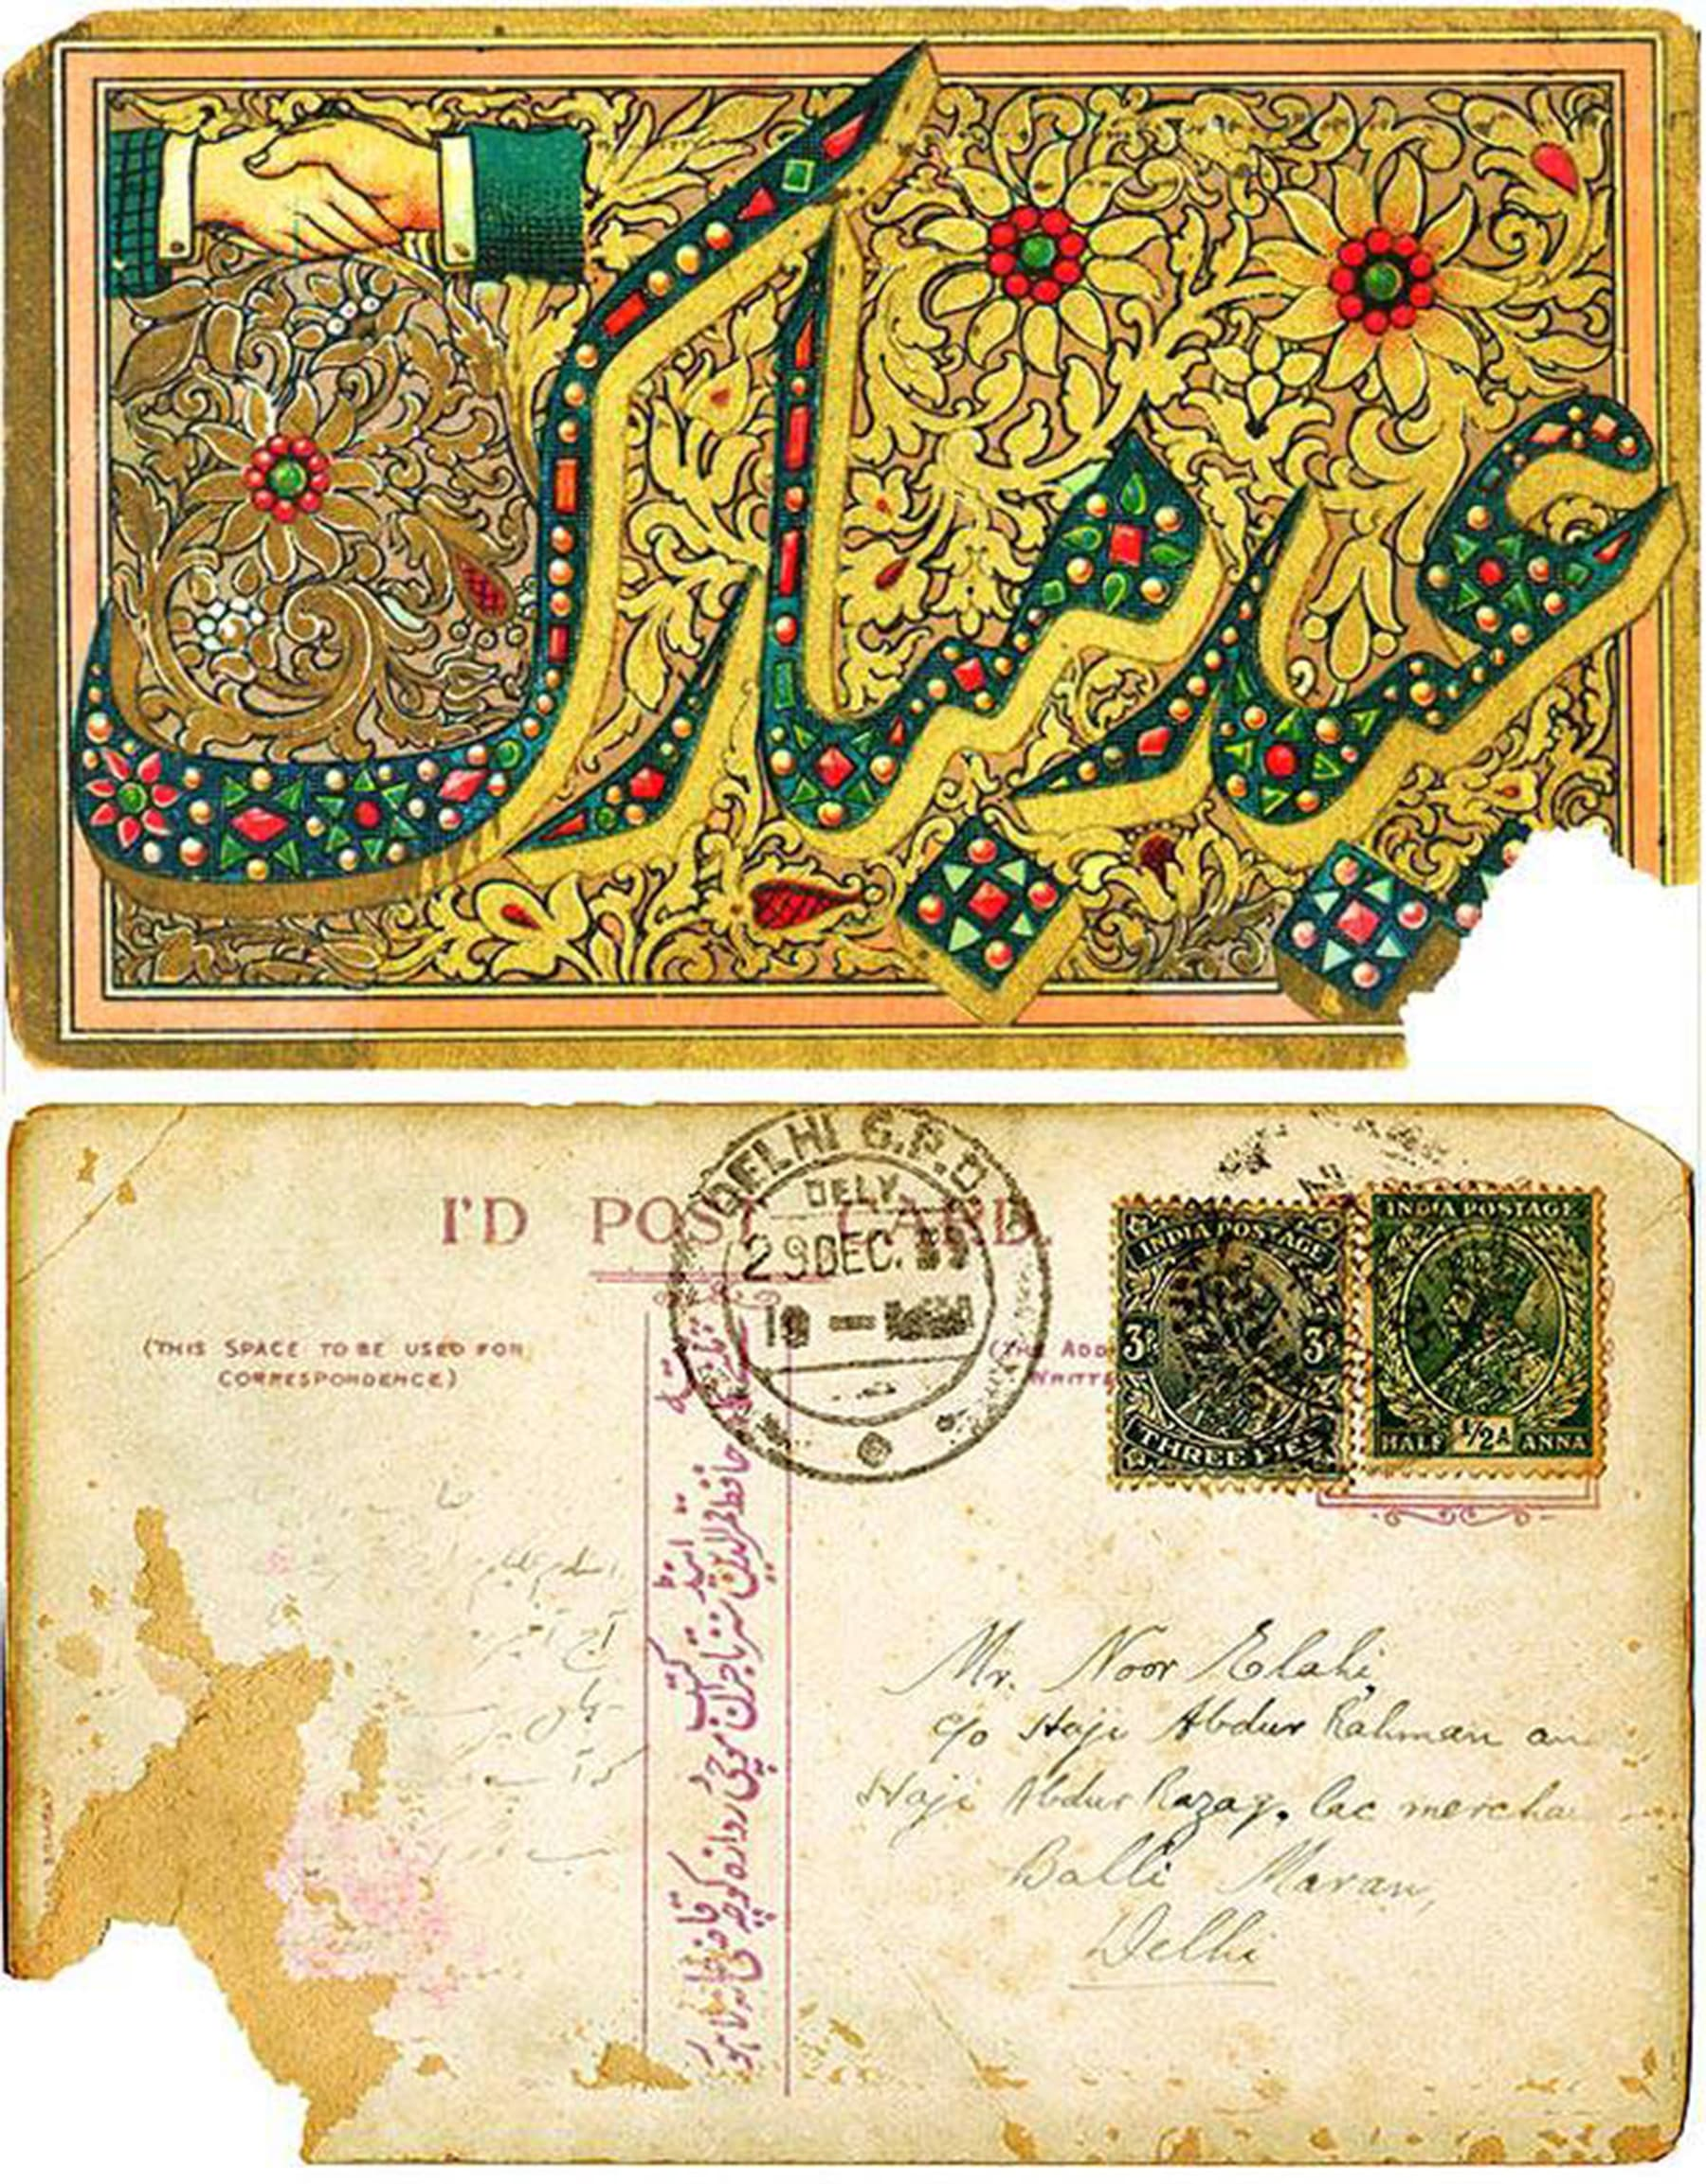 A floral Eid card. Published by Hafiz Qamruddin & Sons, Lahore and posted from Lahore on 24 December 1935. From the Priya Paul Collection, New Delhi.